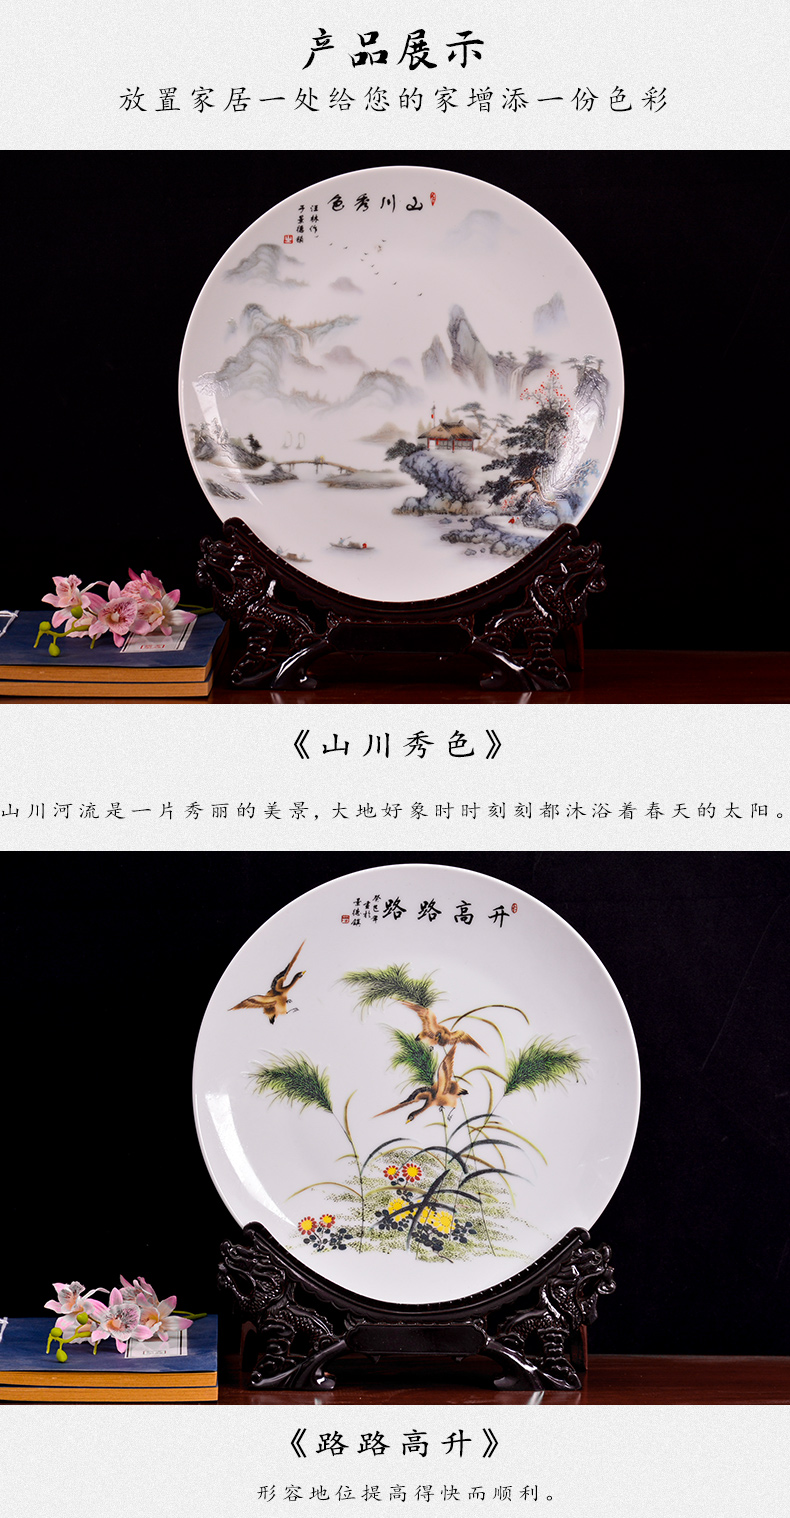 Landscape painting porcelain of jingdezhen ceramics sit plate of the sitting room porch ark of new Chinese style decoration plate furnishing articles of handicraft